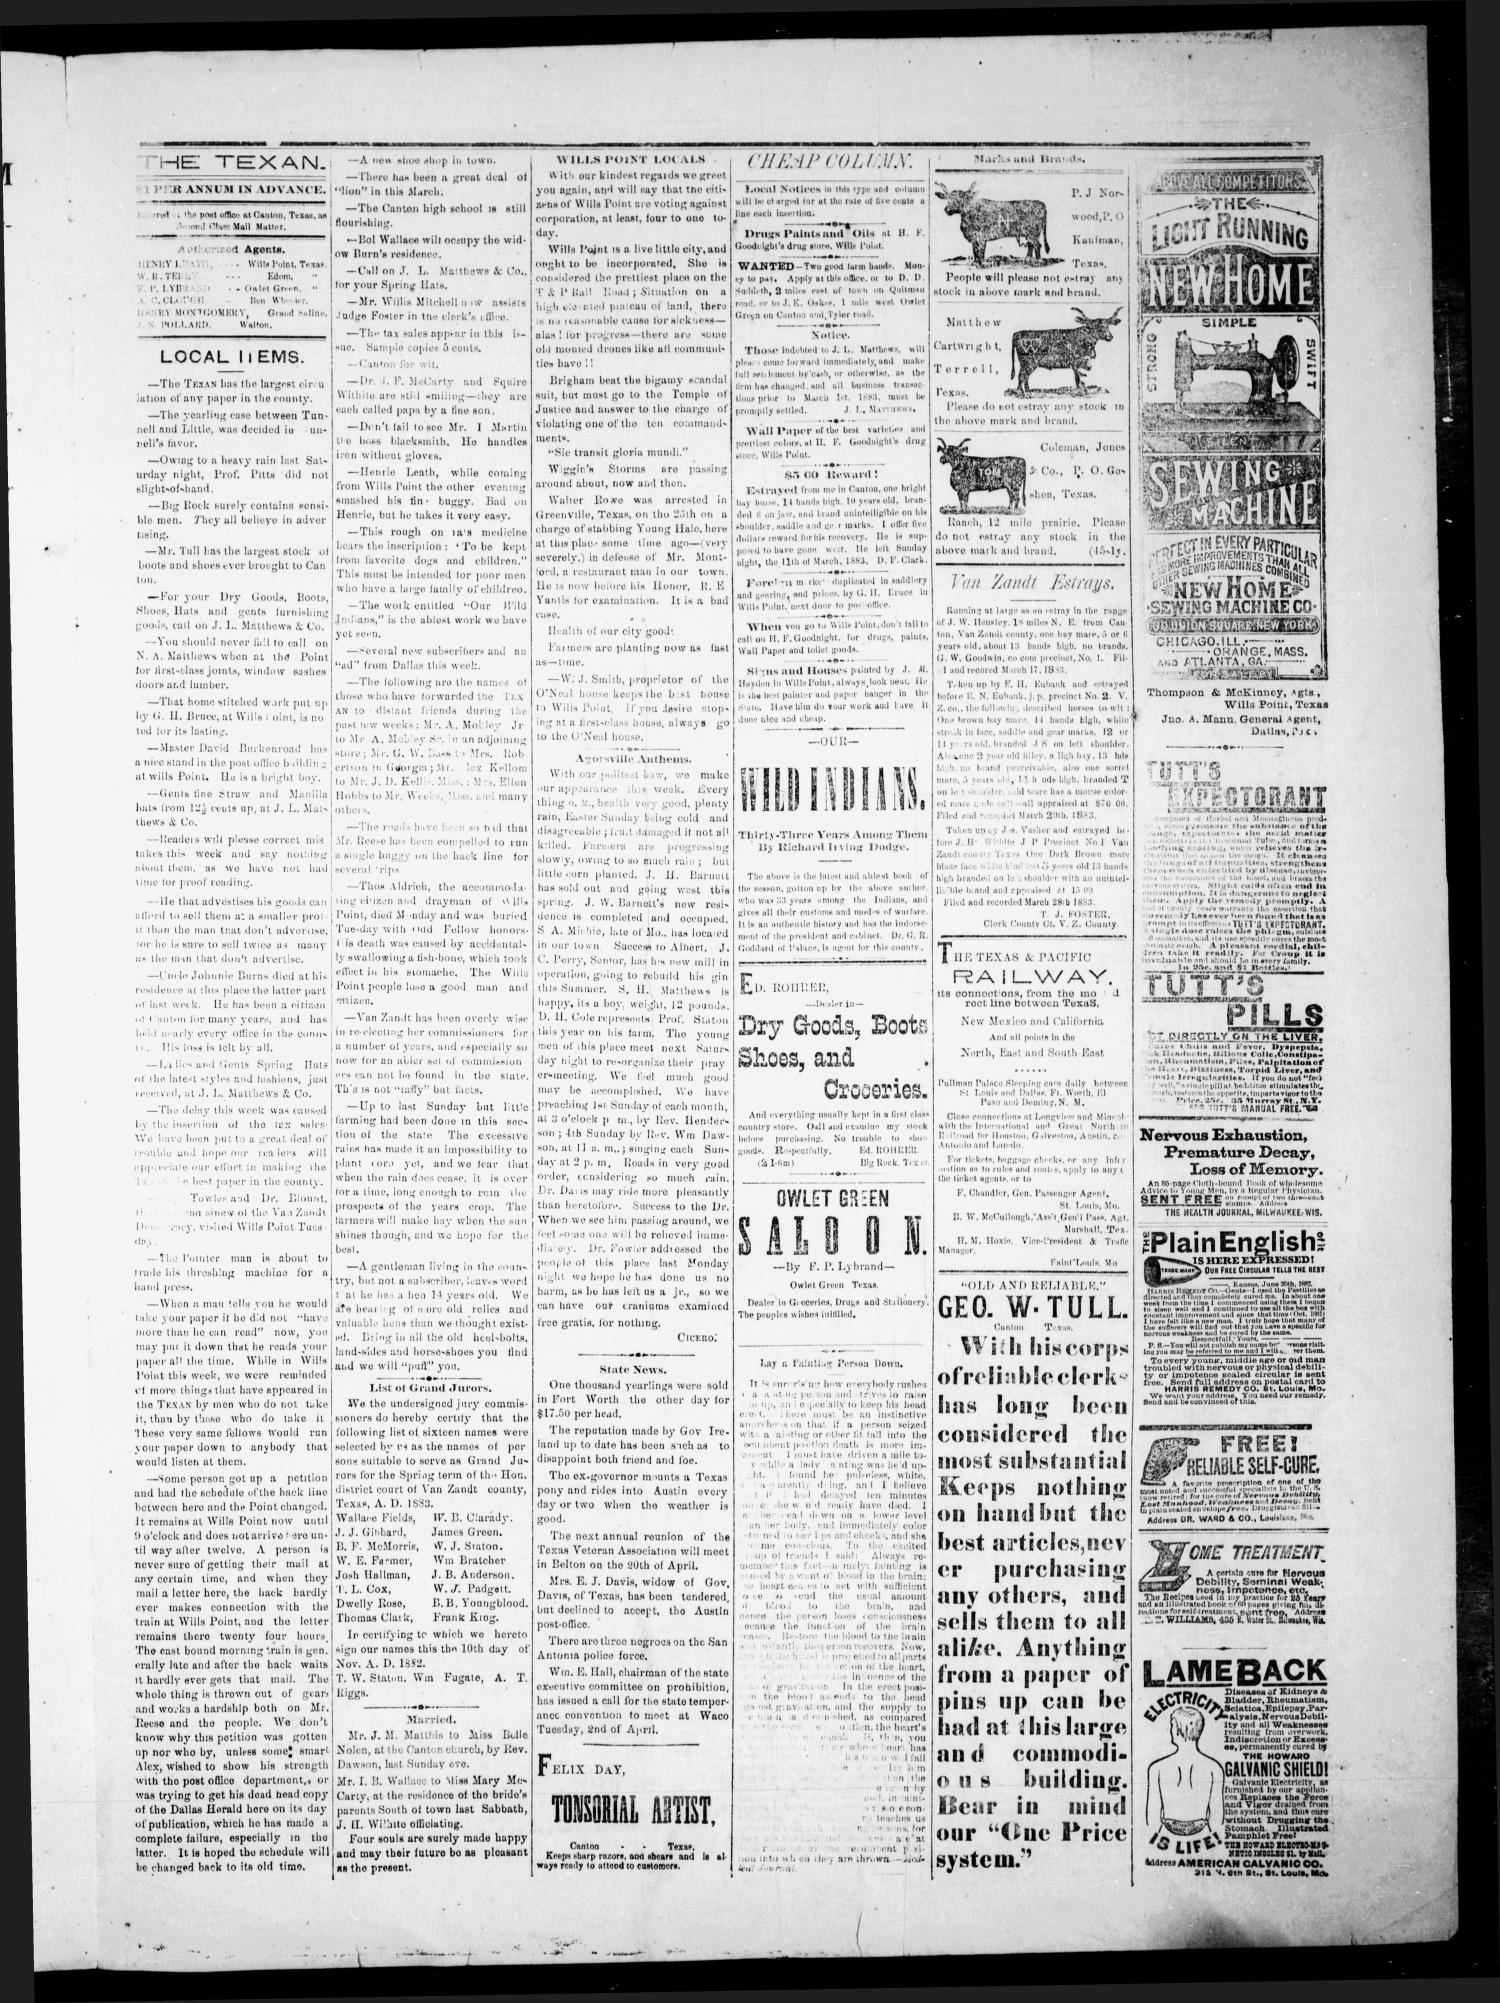 The Canton Texan. (Canton, Tex.), Vol. 2, No. 2, Ed. 1 Friday, March 30,  1883 - Page 3 of 4 - The Portal to Texas History